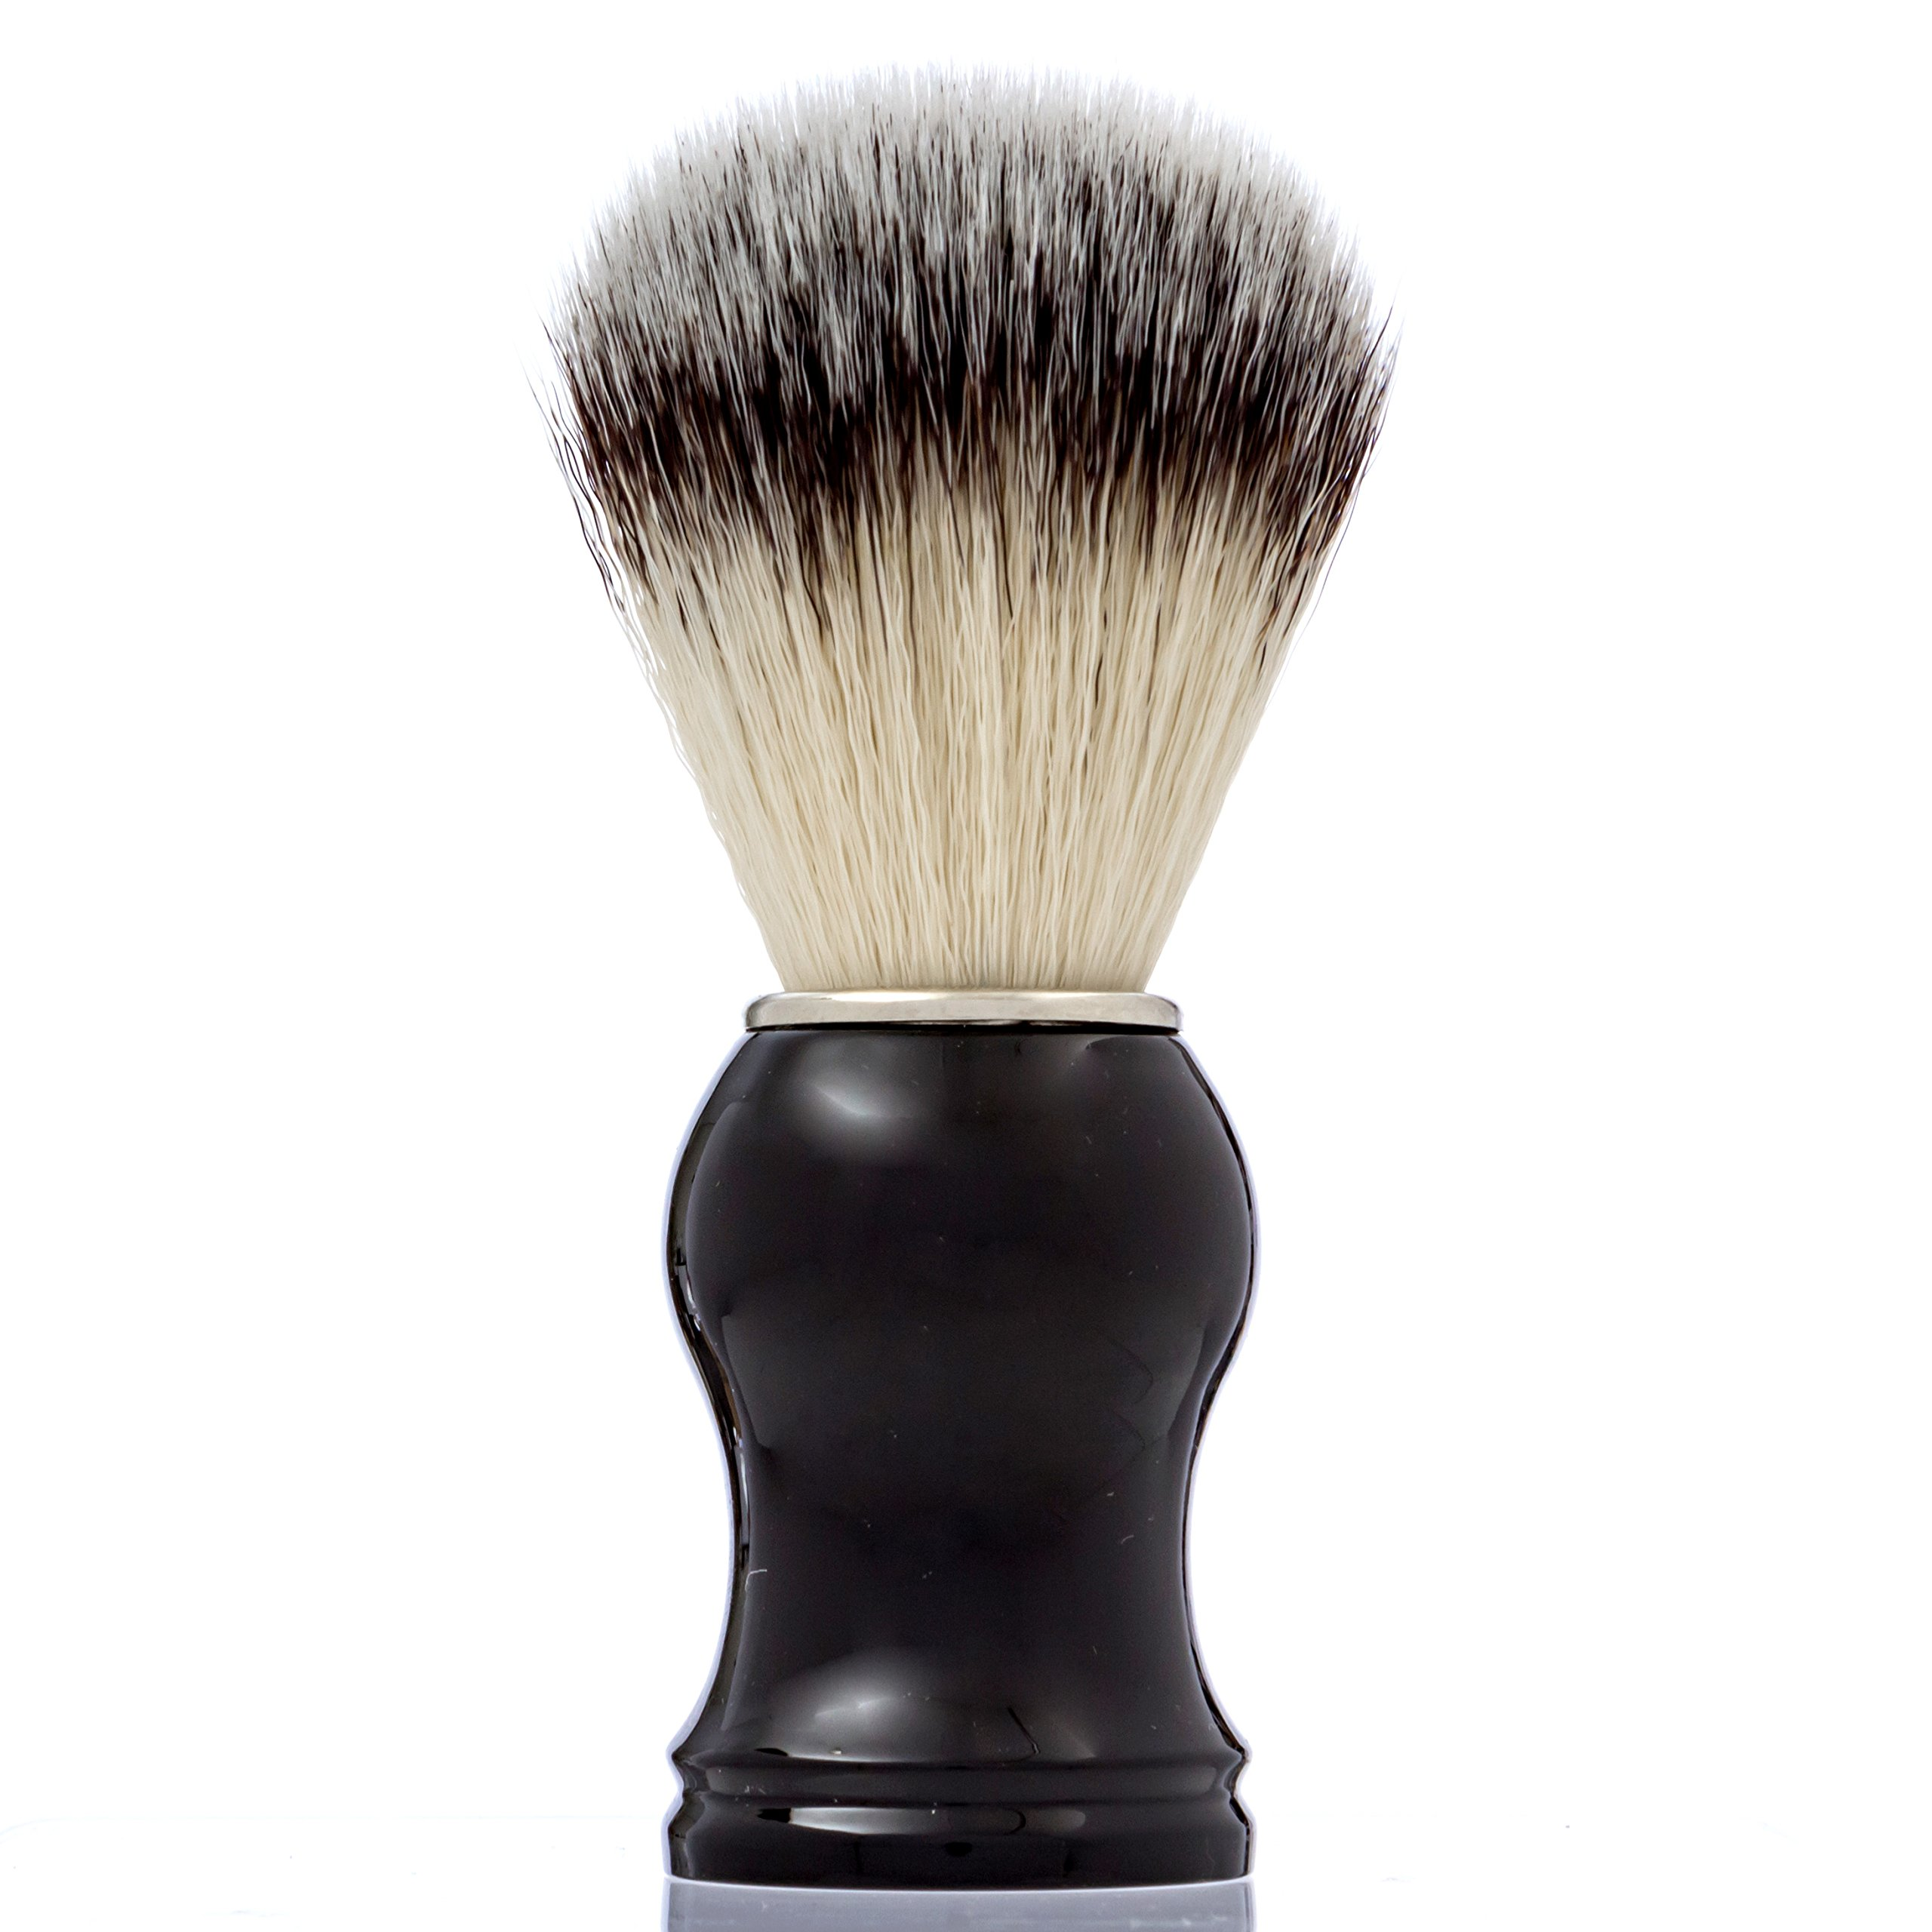 Synthetic Shaving Brush By PimplePopper.co: Vegan-Friendly Shave Brush With Synthetic Bristles - Traditional Grooming Brush For Wet Shaving Your Beard, Moustache & Facial Hair - Eliminate Razor Burns product image